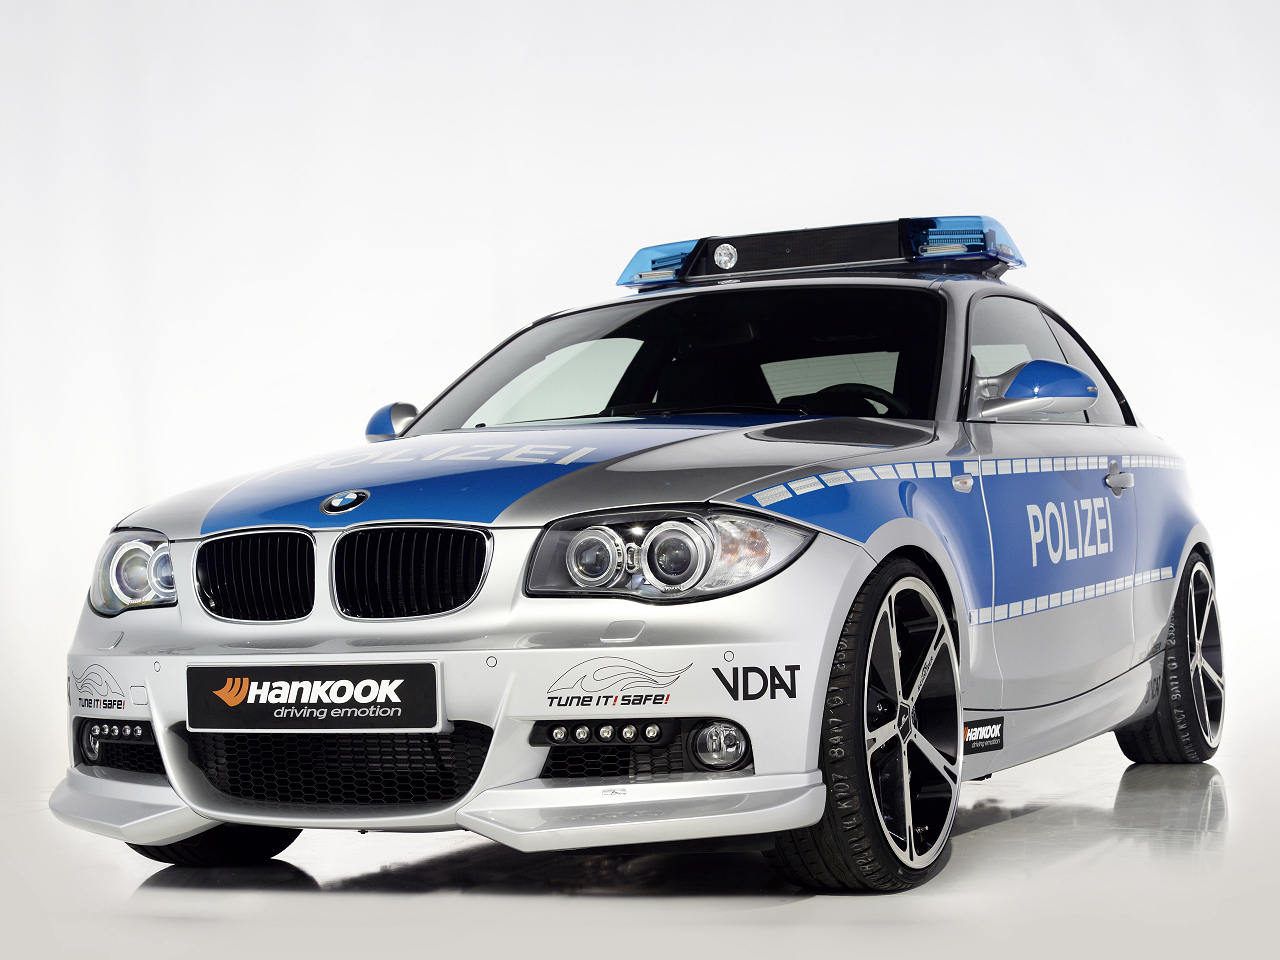 AC Schnitzer BMW 123d - Tune It! Safe! Car 2009